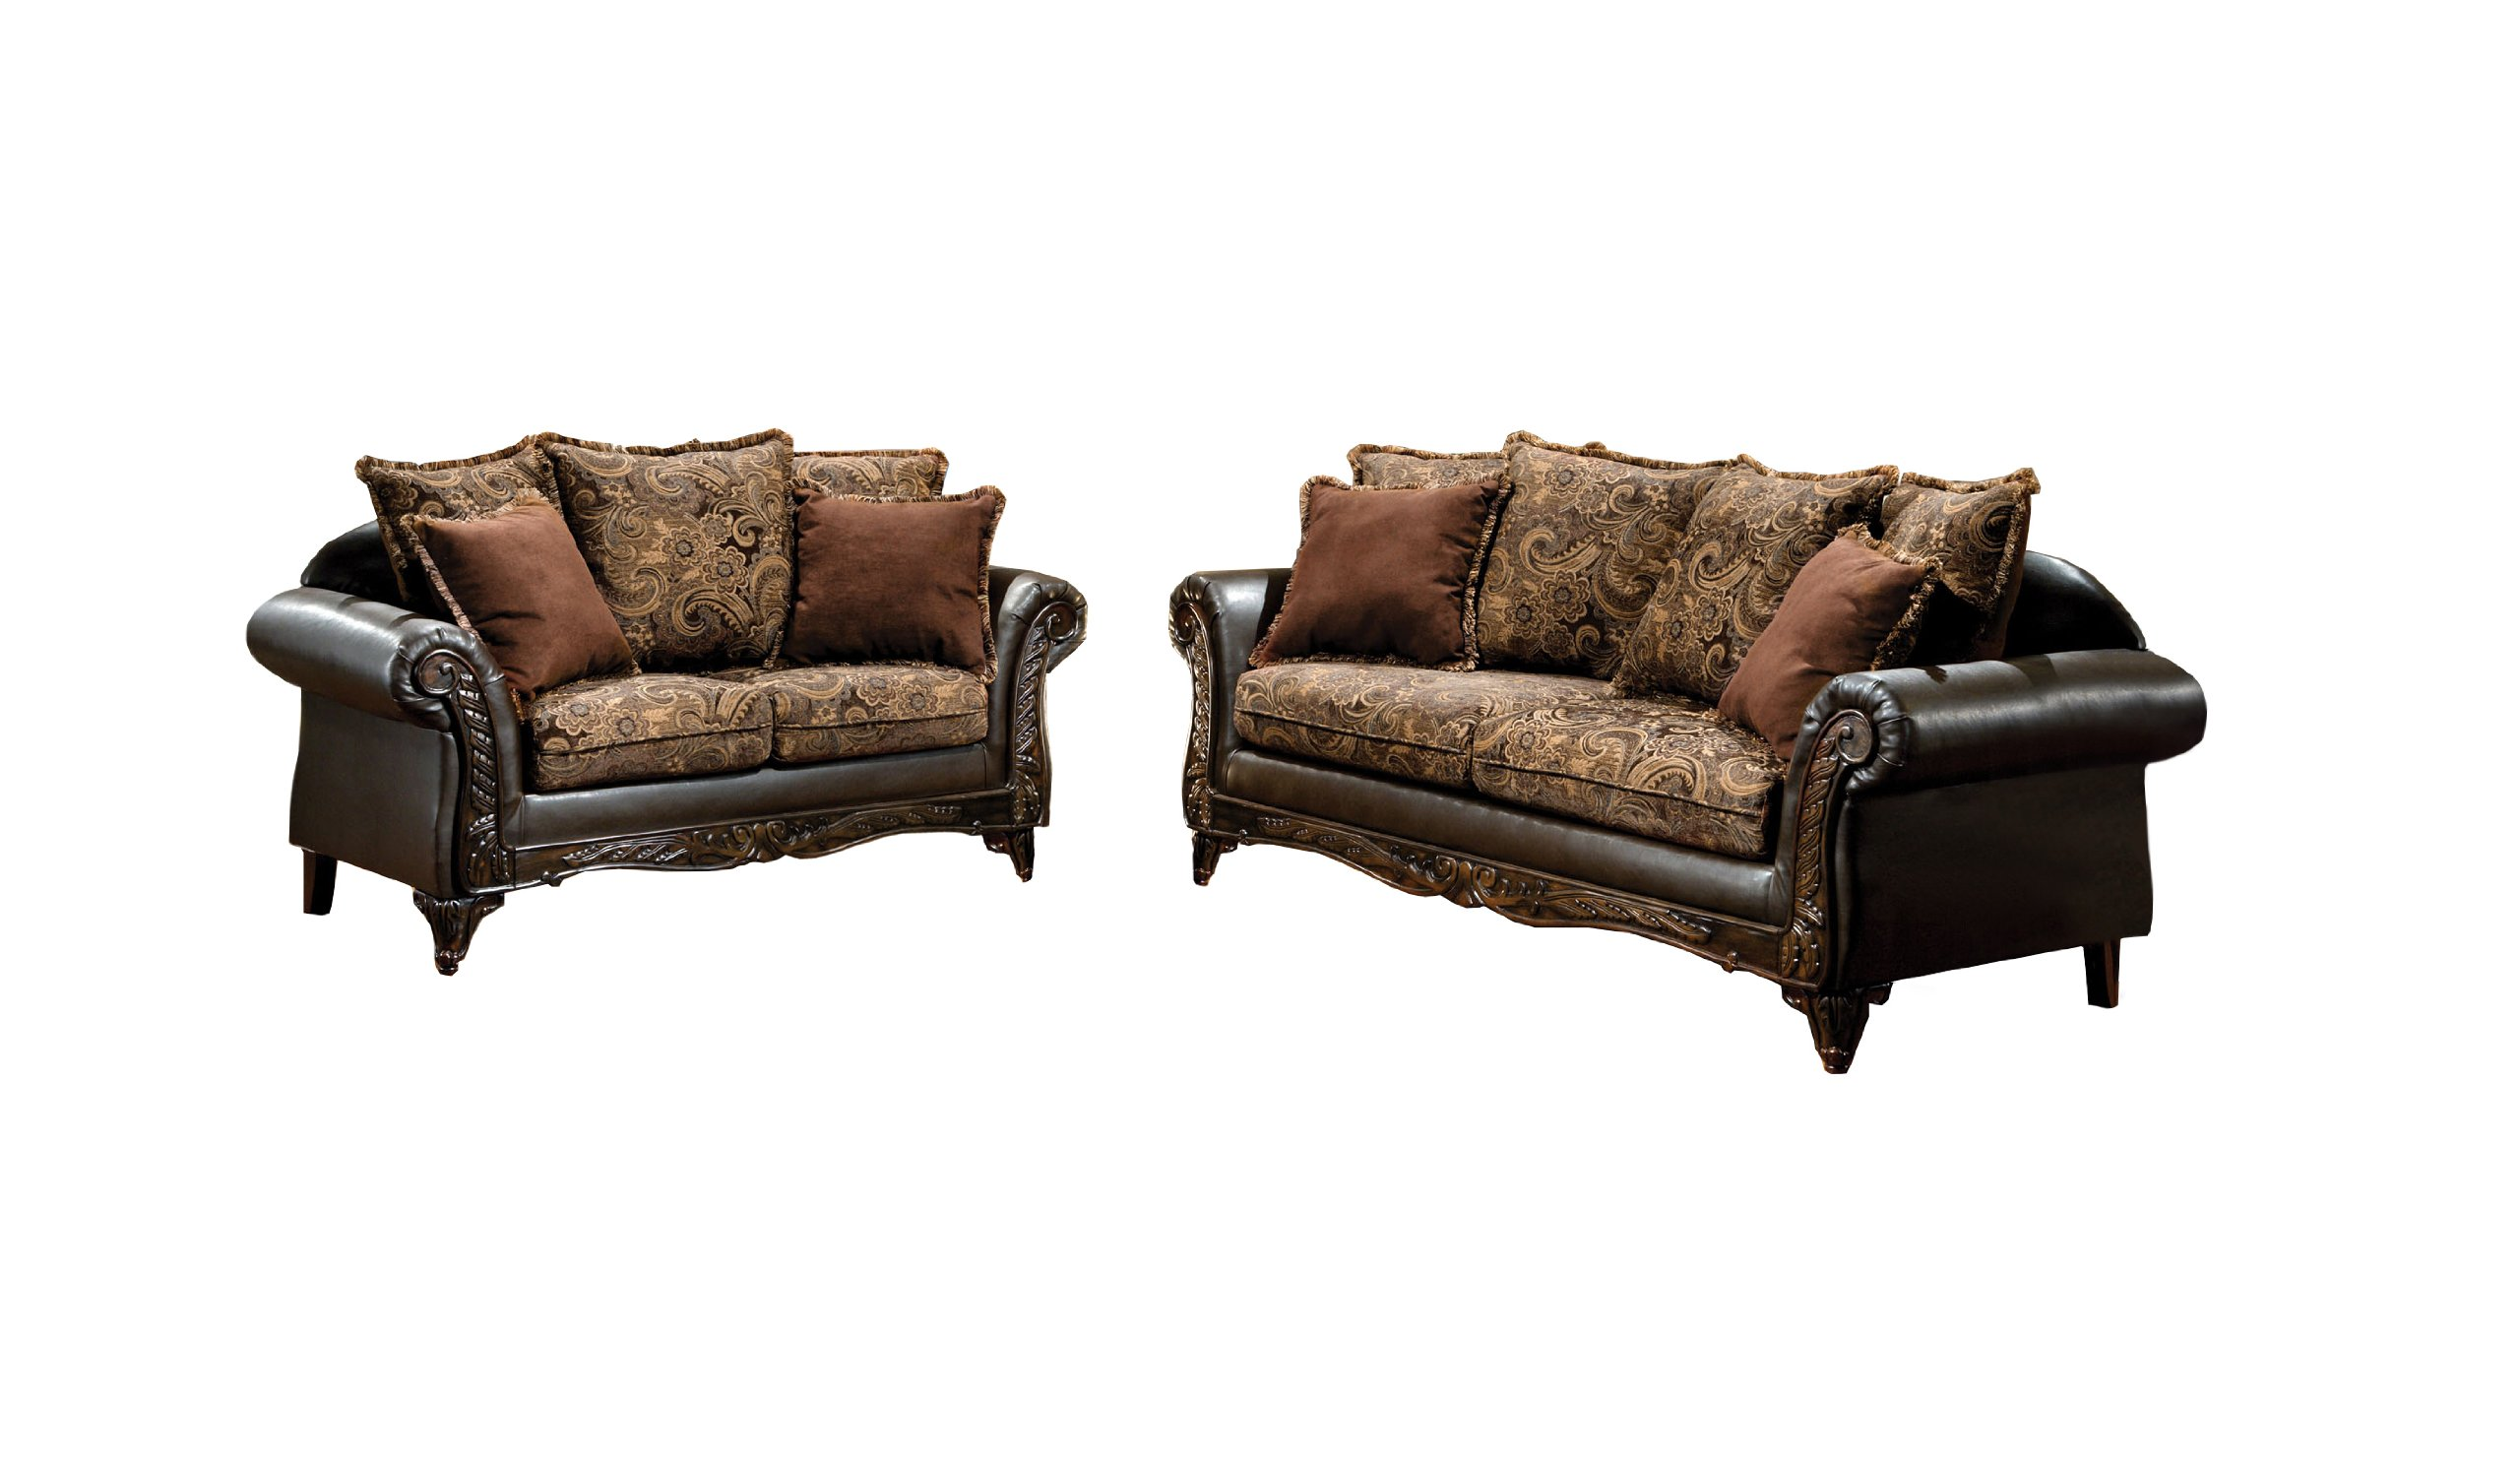 Furniture of America Inigo 2-Piece Fabric and Leatherette Sofa Set with Accent Pillows and Wood Trim, Dark Brown Floral Print